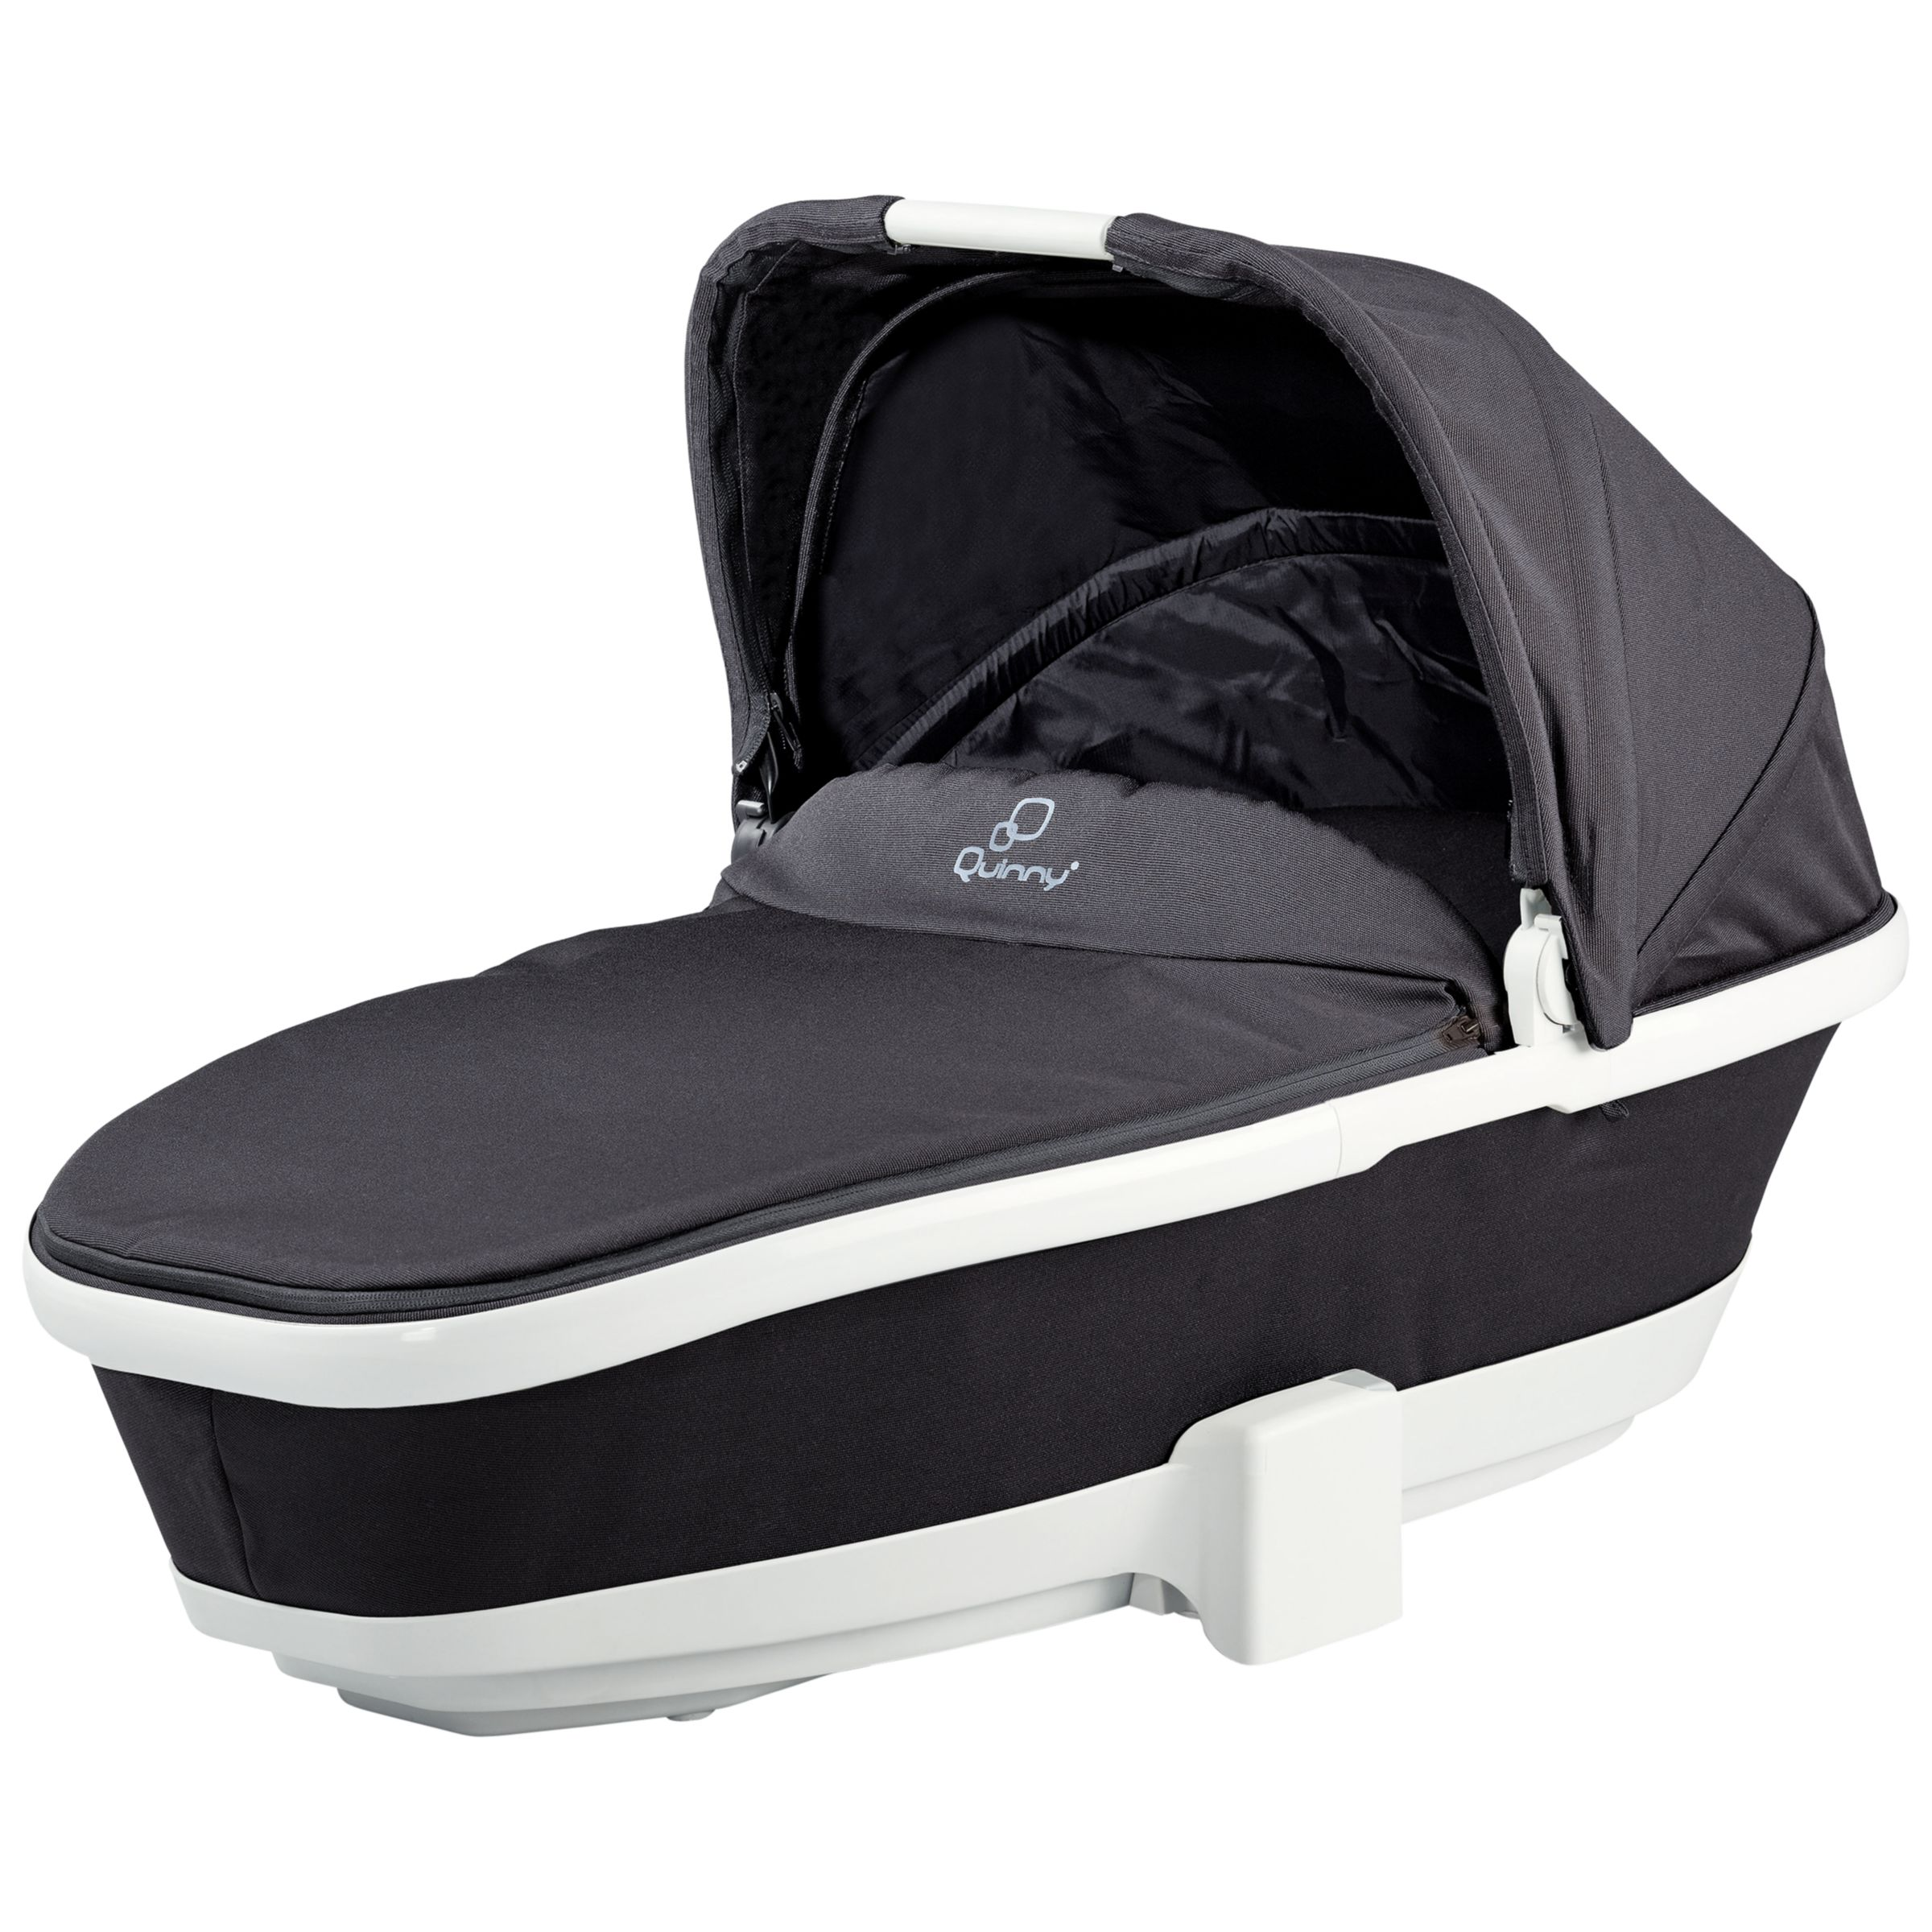 Quinny Foldable Carrycot Black Iron